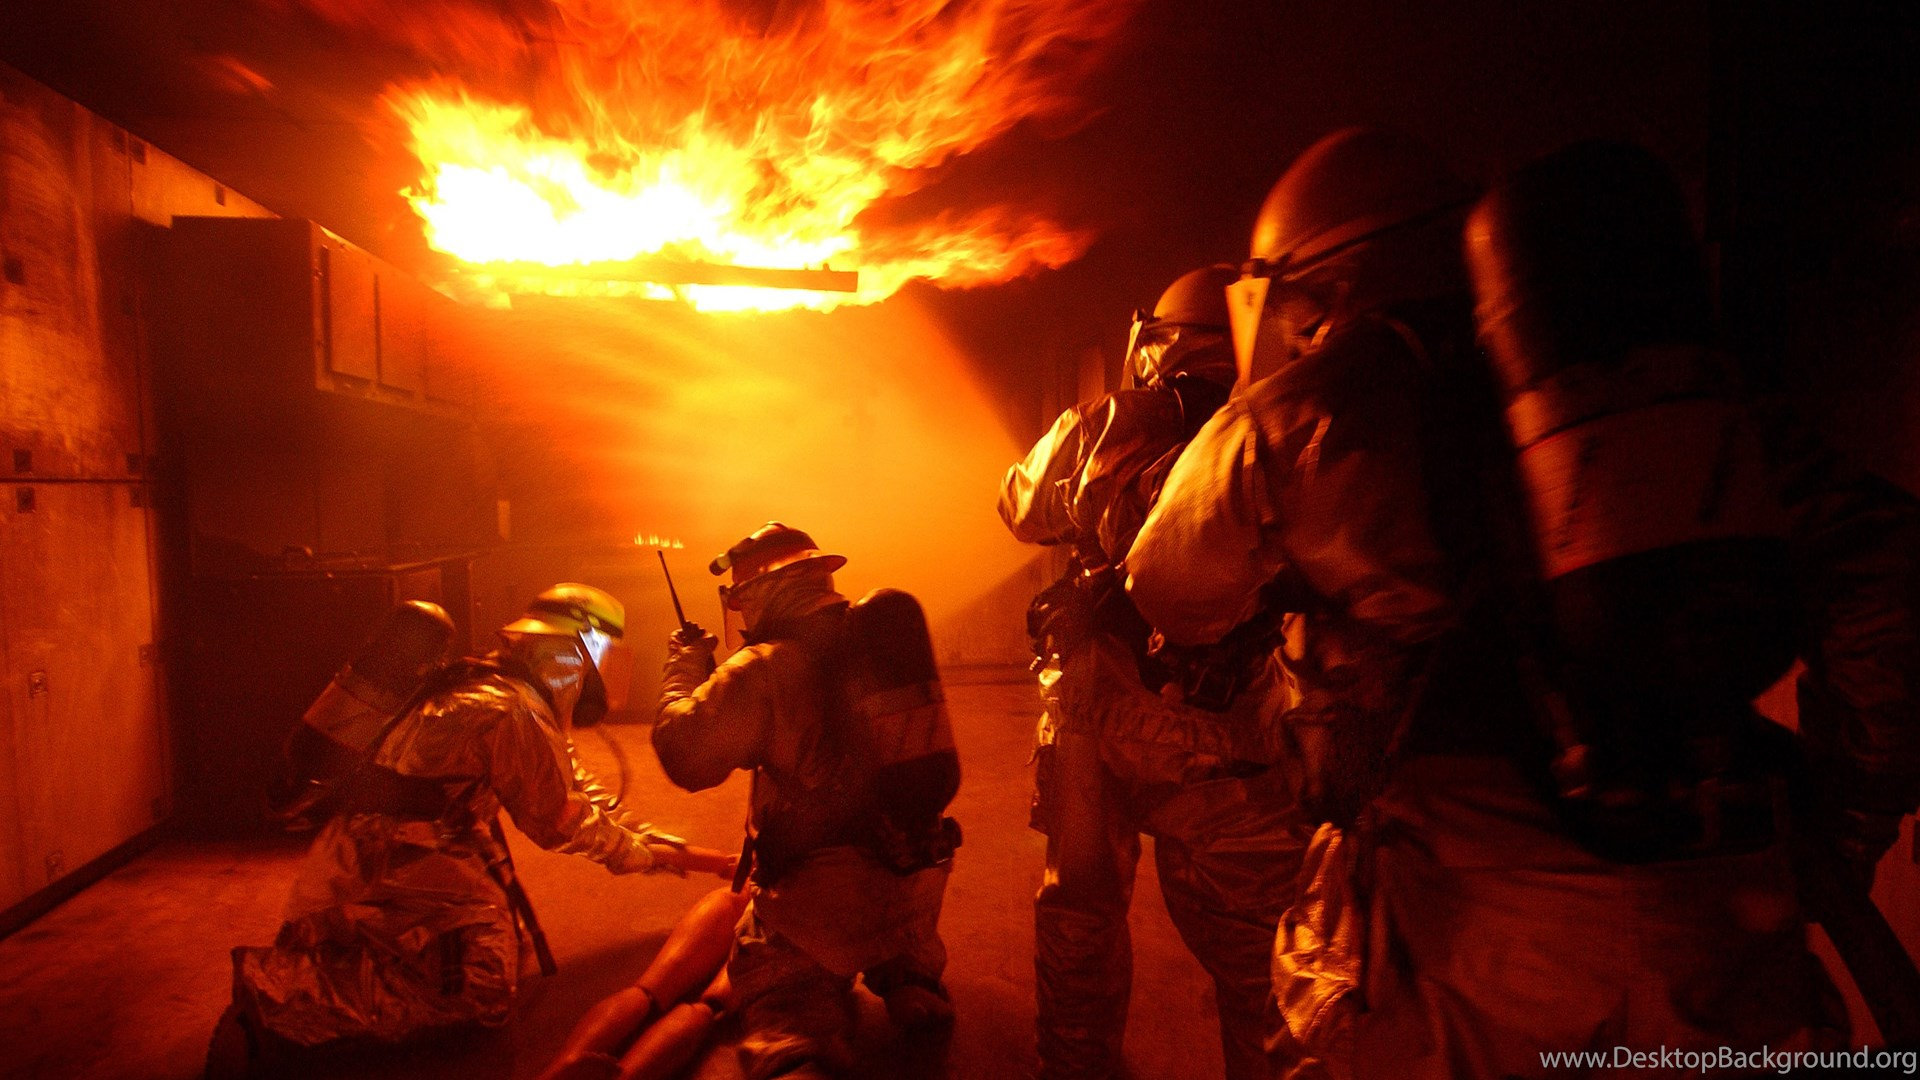 the life and responsibilities of a firefighter